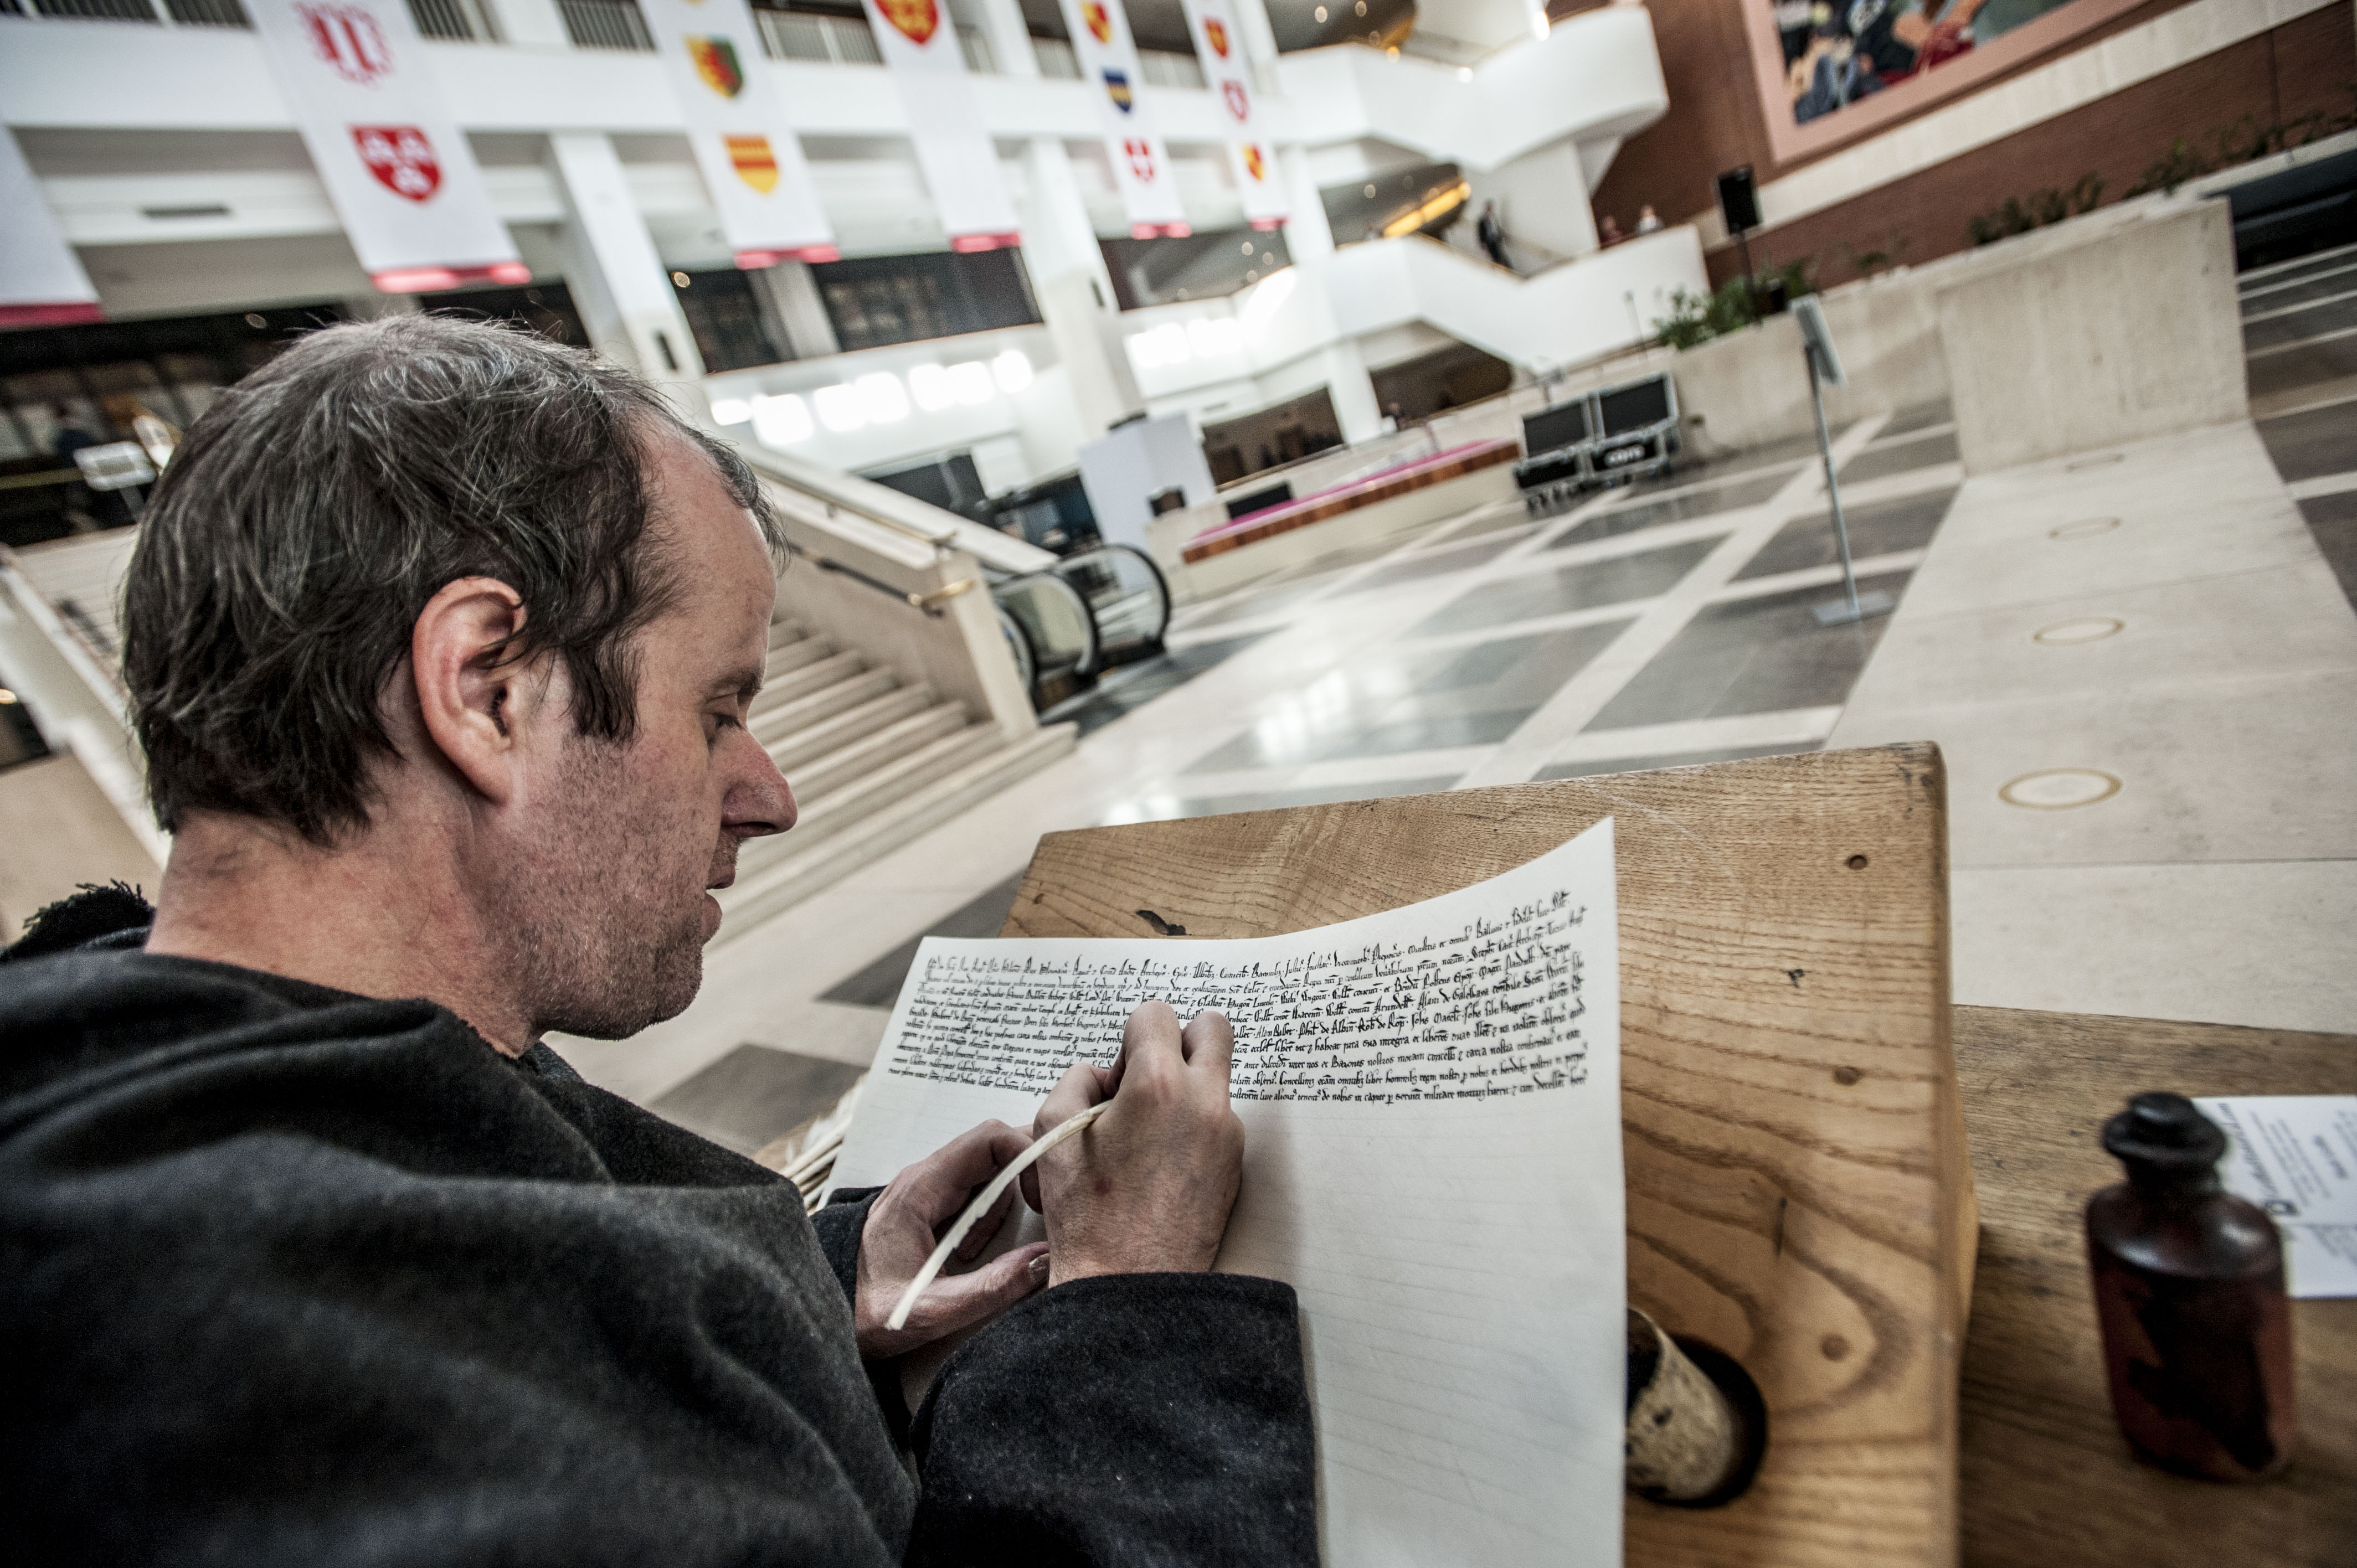 A scribe writes out Magna Carta clauses at the unification day.